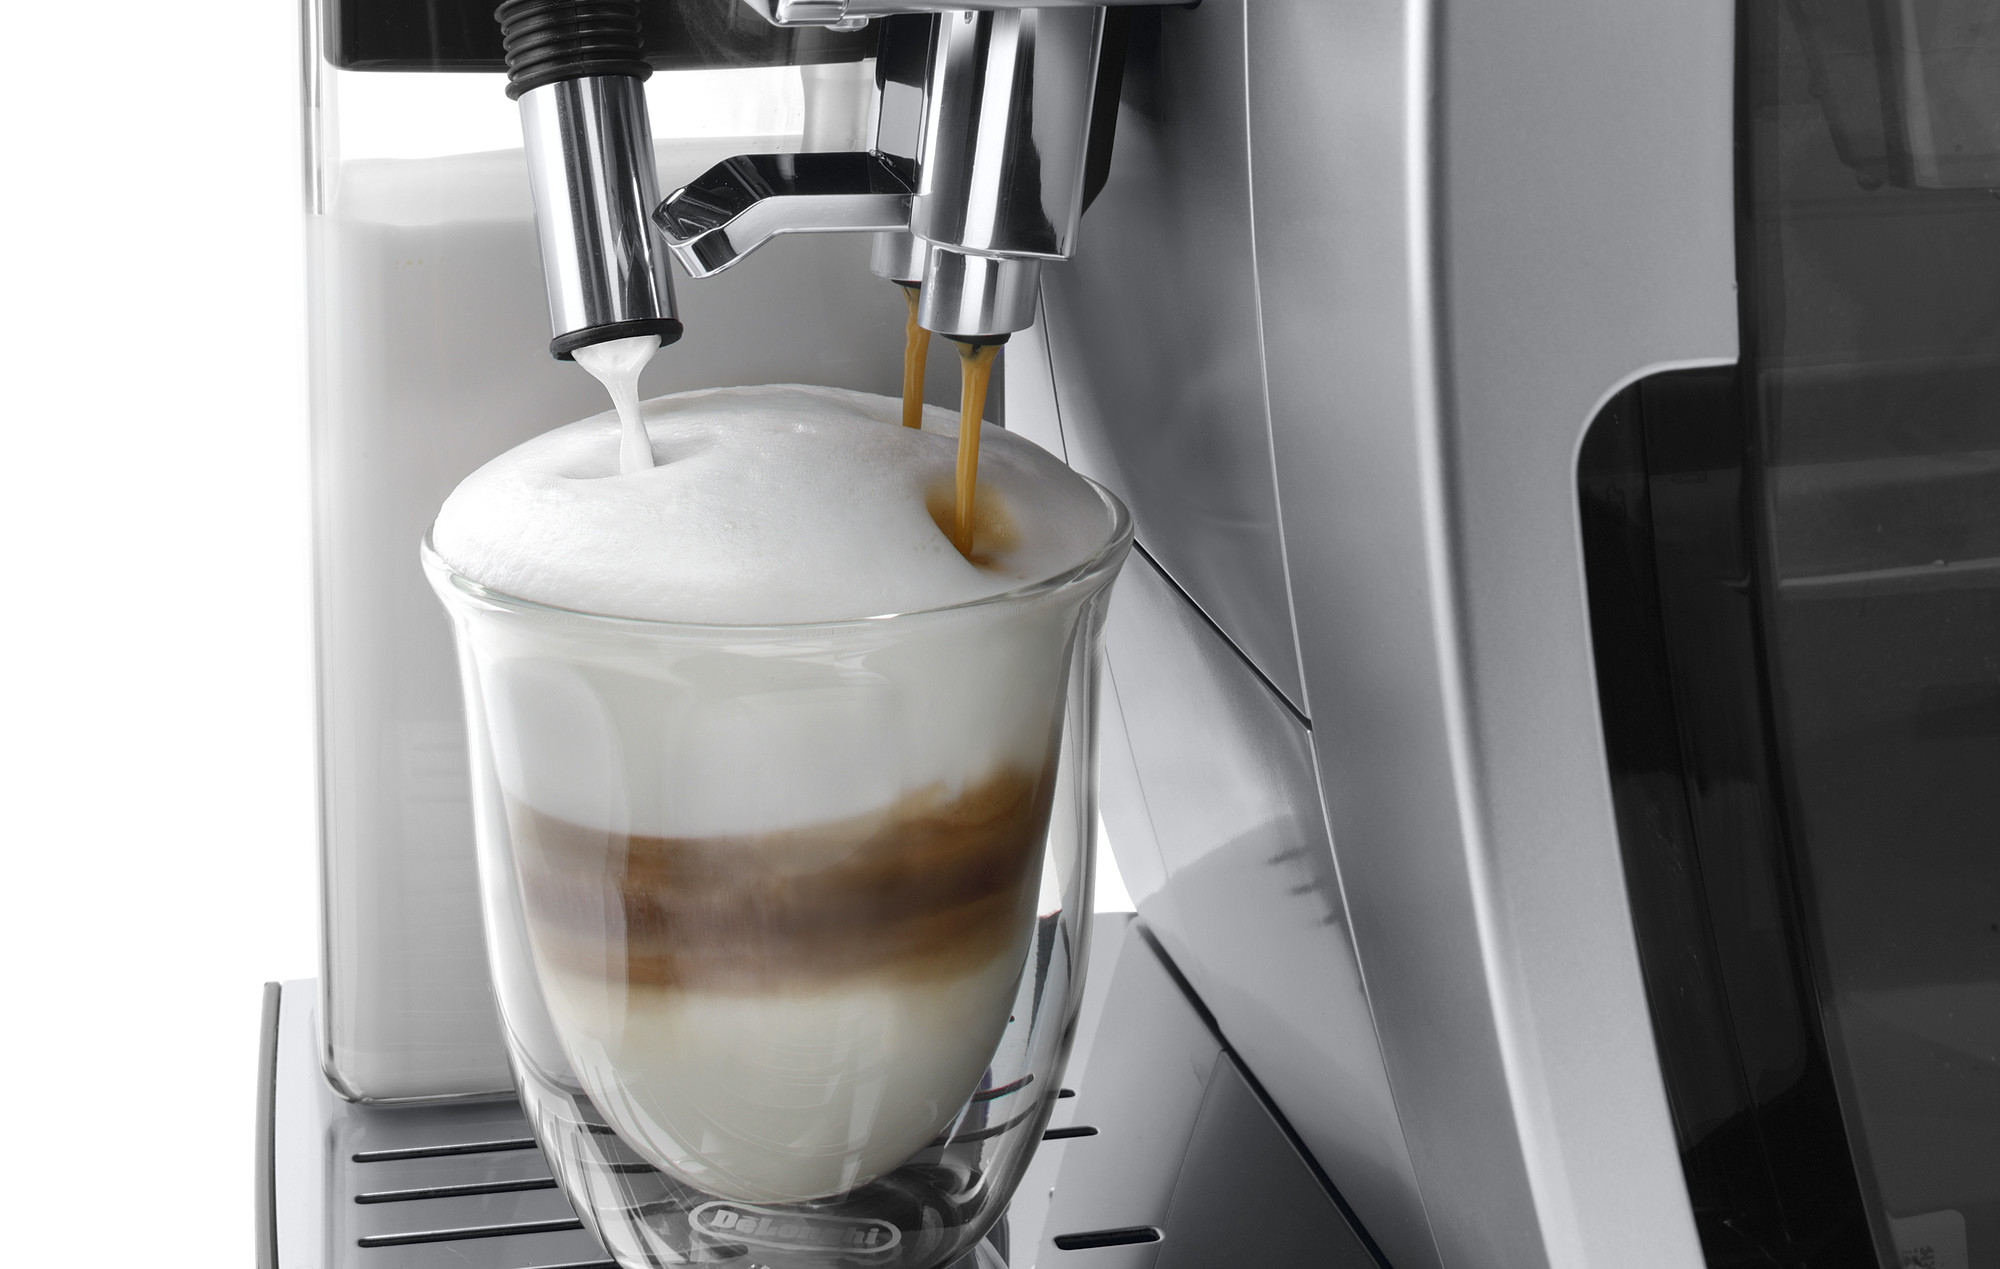 coffee being extracted from a coffee machine